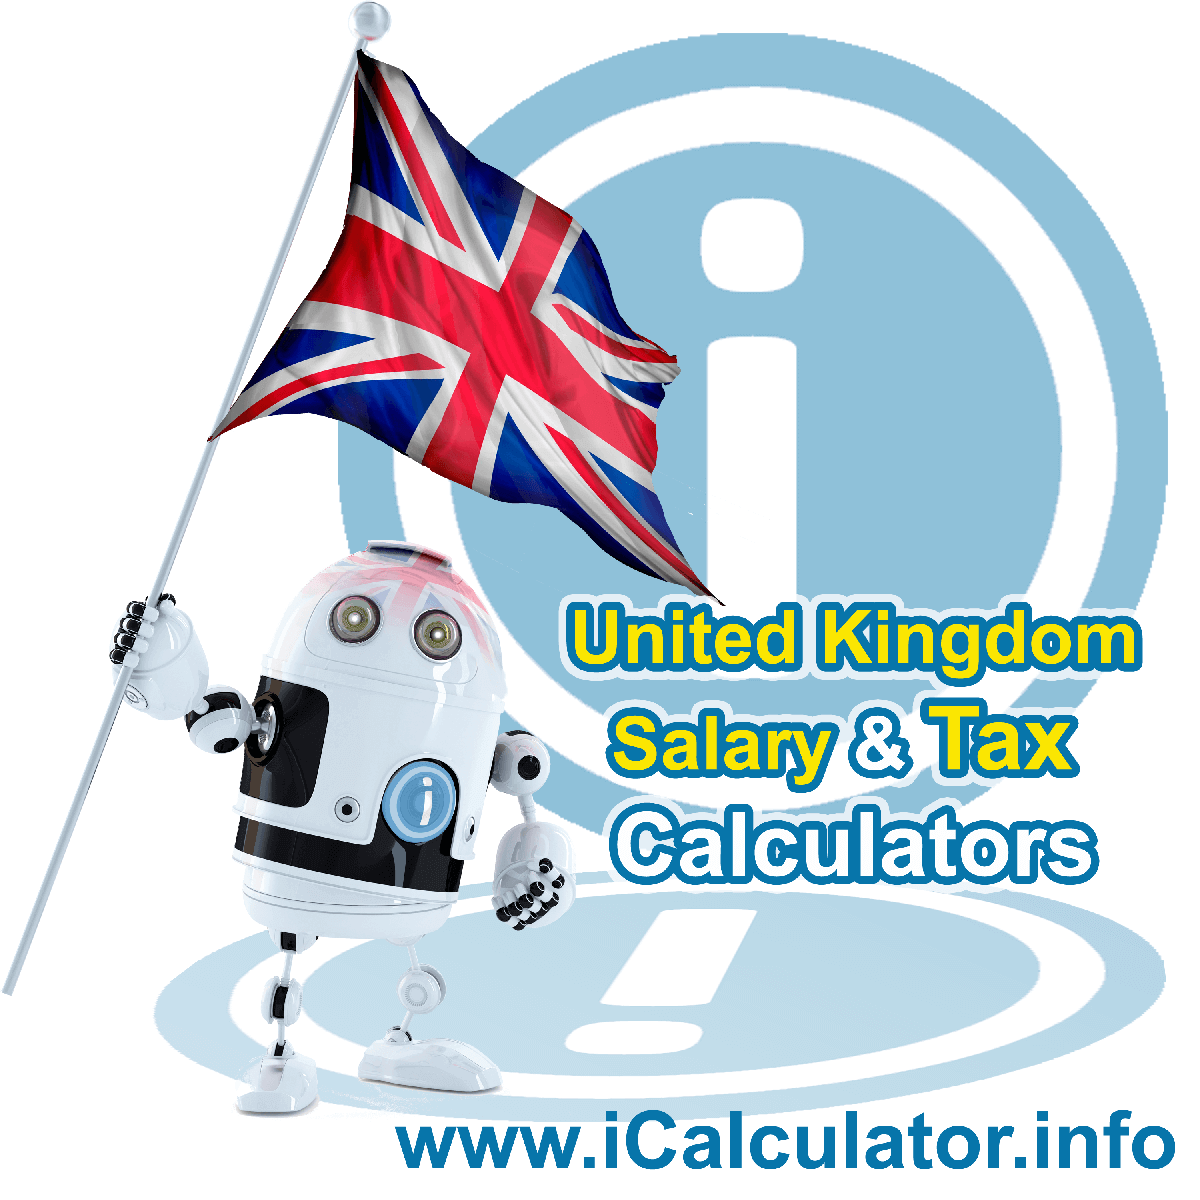 UK Salary and Tax Calculator. This image shows the United Kingdom flag and information relating to the tax formula for the UK Salary and Tax Calculator